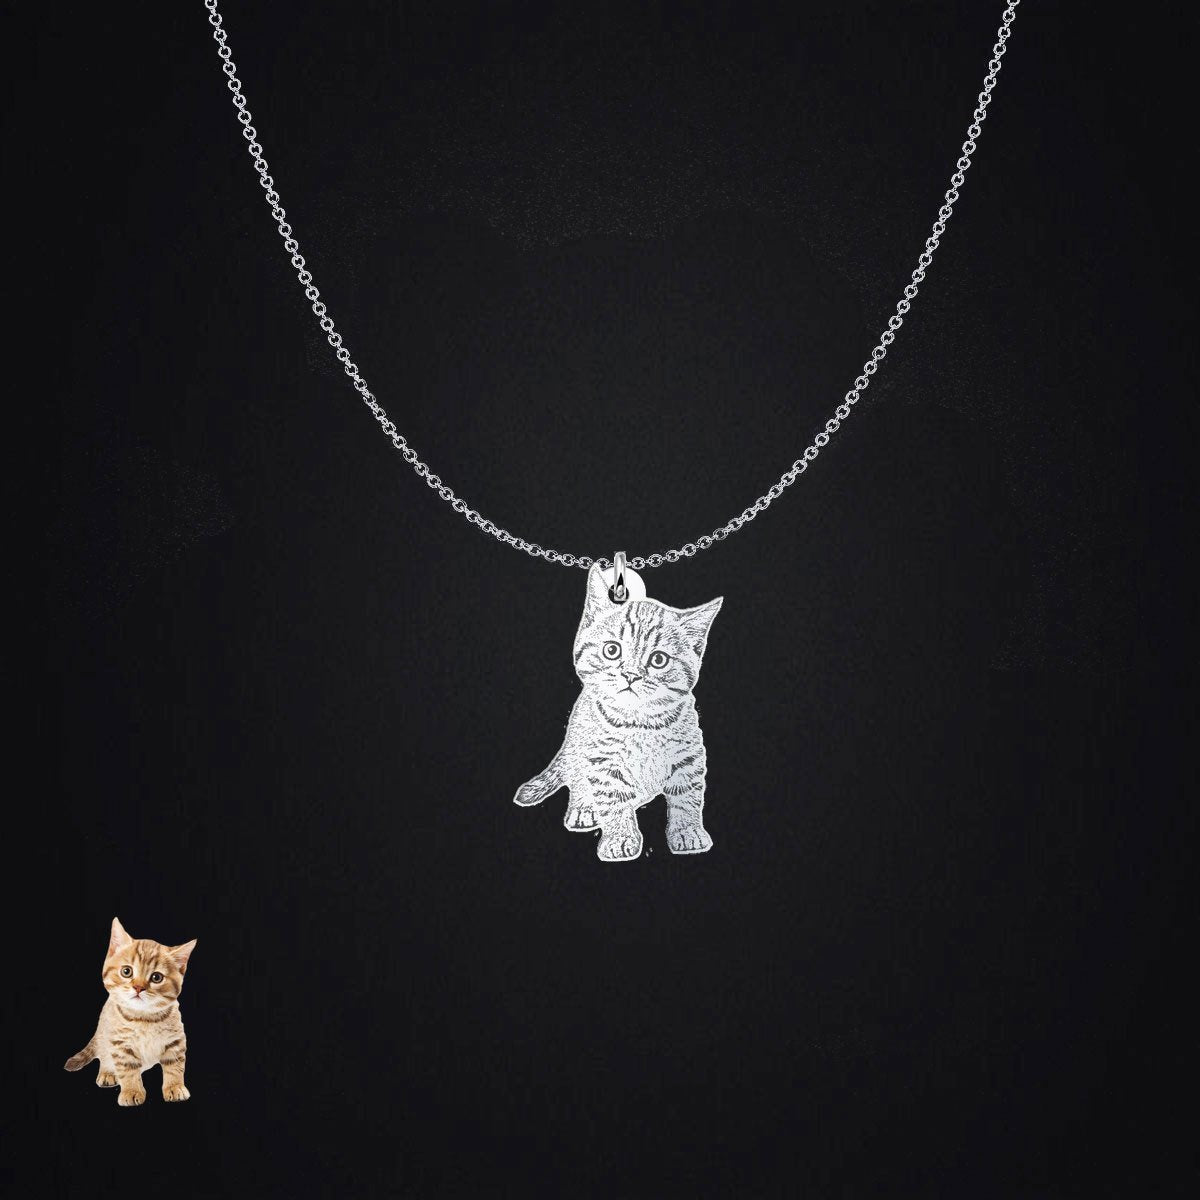 Your Pet Silhouette Pendant Necklace